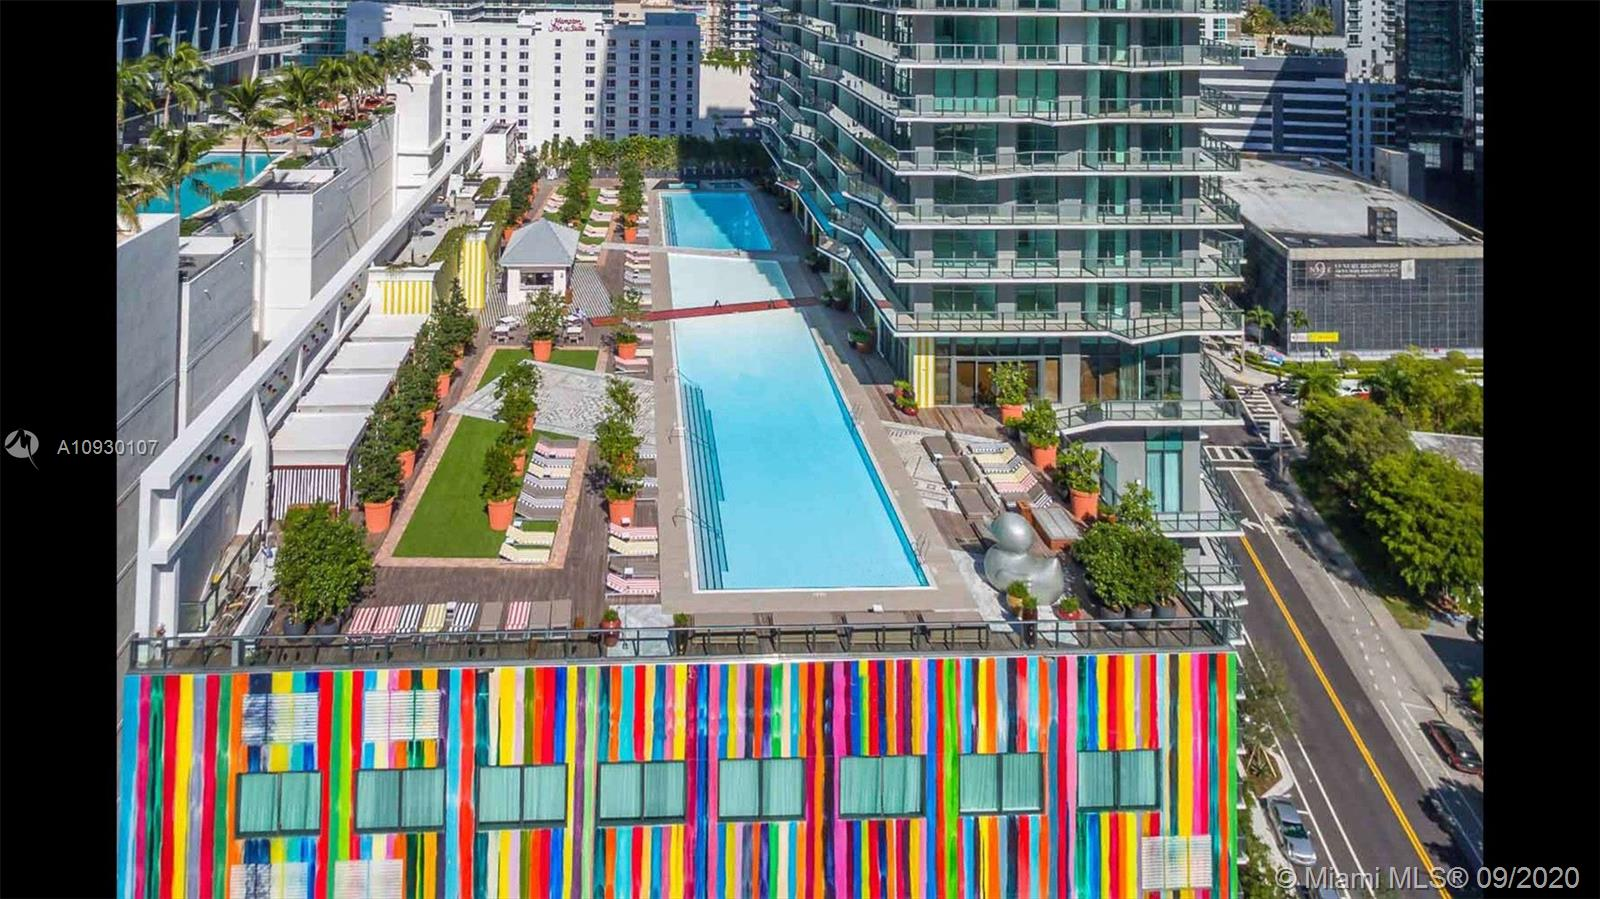 Amazing 3 Bed with 270 degrees view unit at ICON BAY located in the heart of BRICKELL just south of Downtown MIAMI. Unit features a floor plan with open kitchen with European cabinetry, IMPORTED PORCELAIN TITLE, CUSTOM BUILT CLOSETS, 2.5 bathrooms and 1 assigned parking space. The building offers RESORT AMENITIES that includes Gym, Pool, Party Room, Lounge area, Spa. EASY TO SHOW.